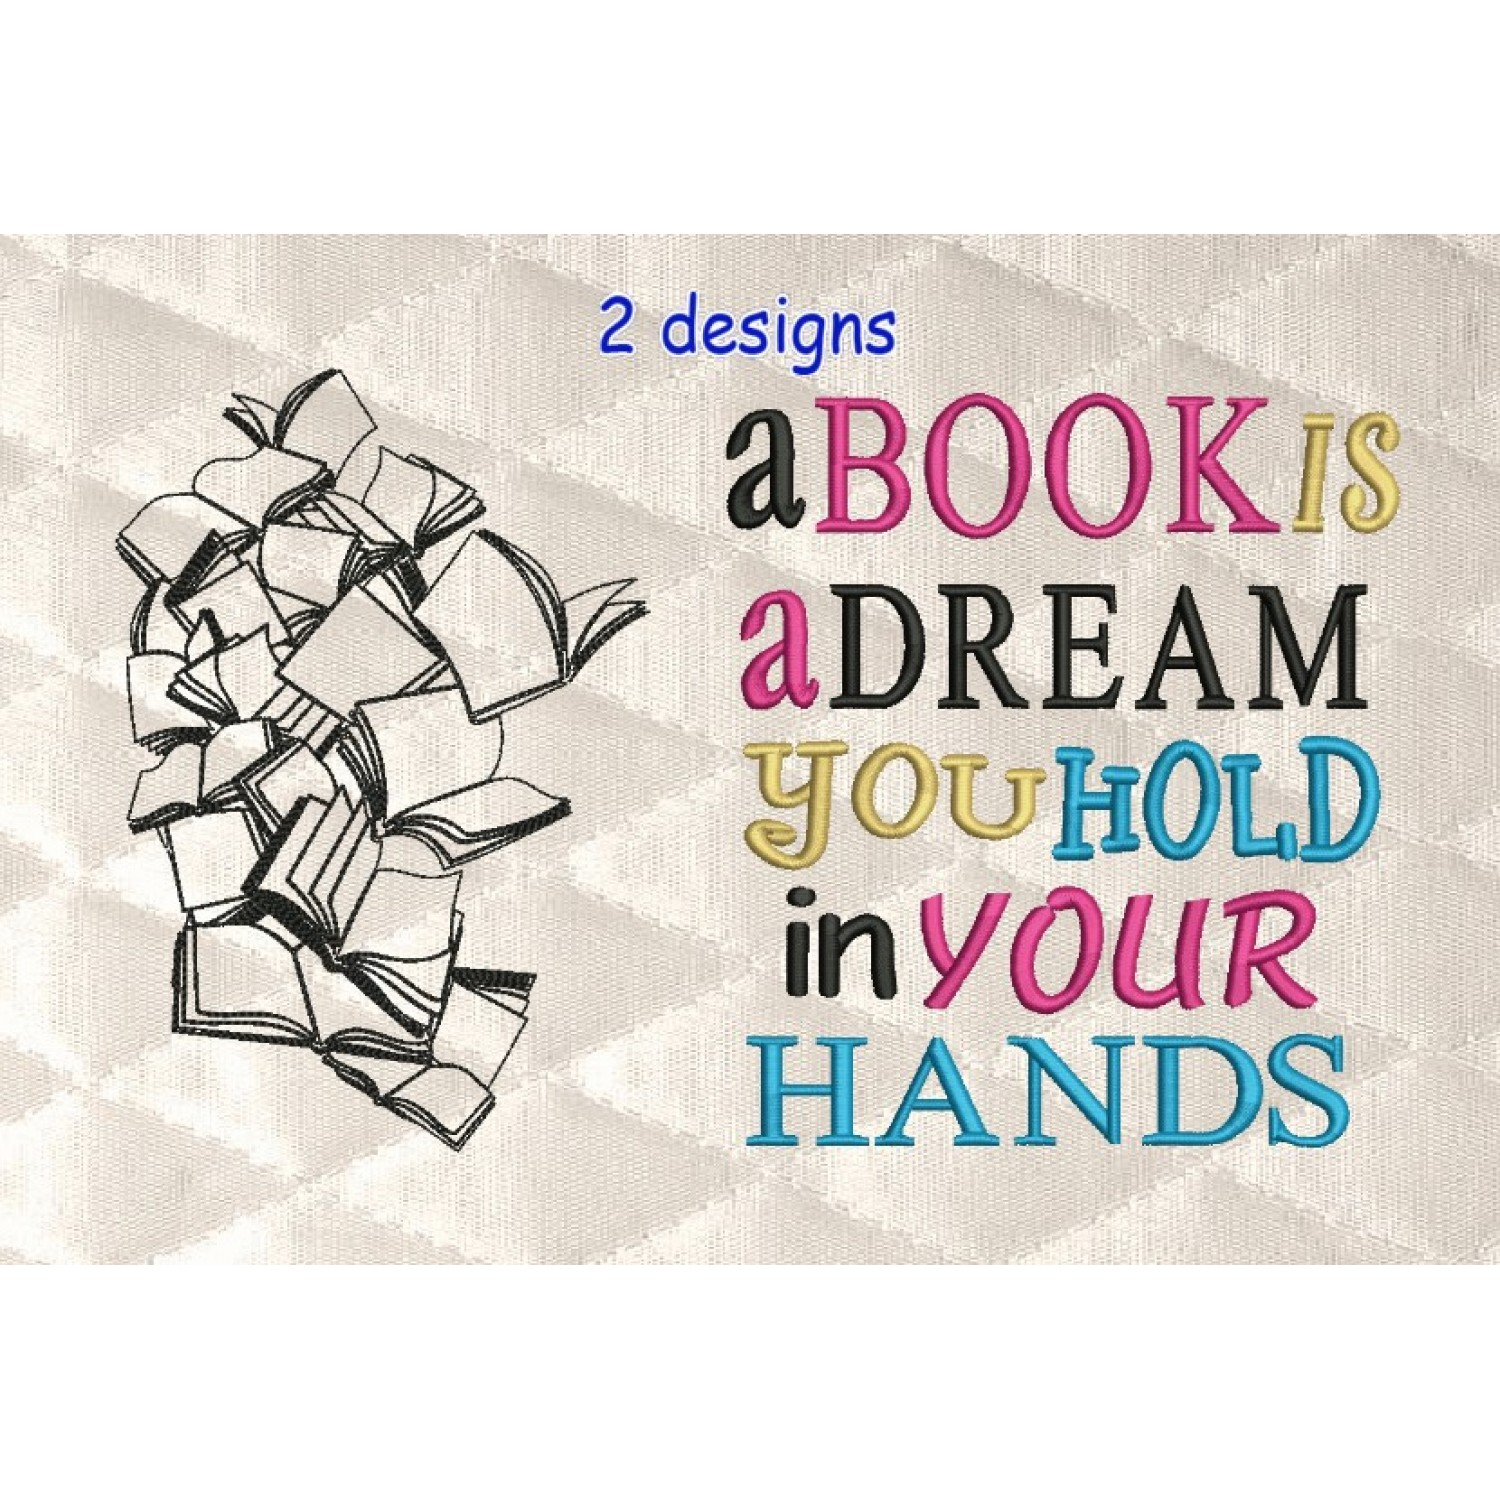 Books line with a book is a dream